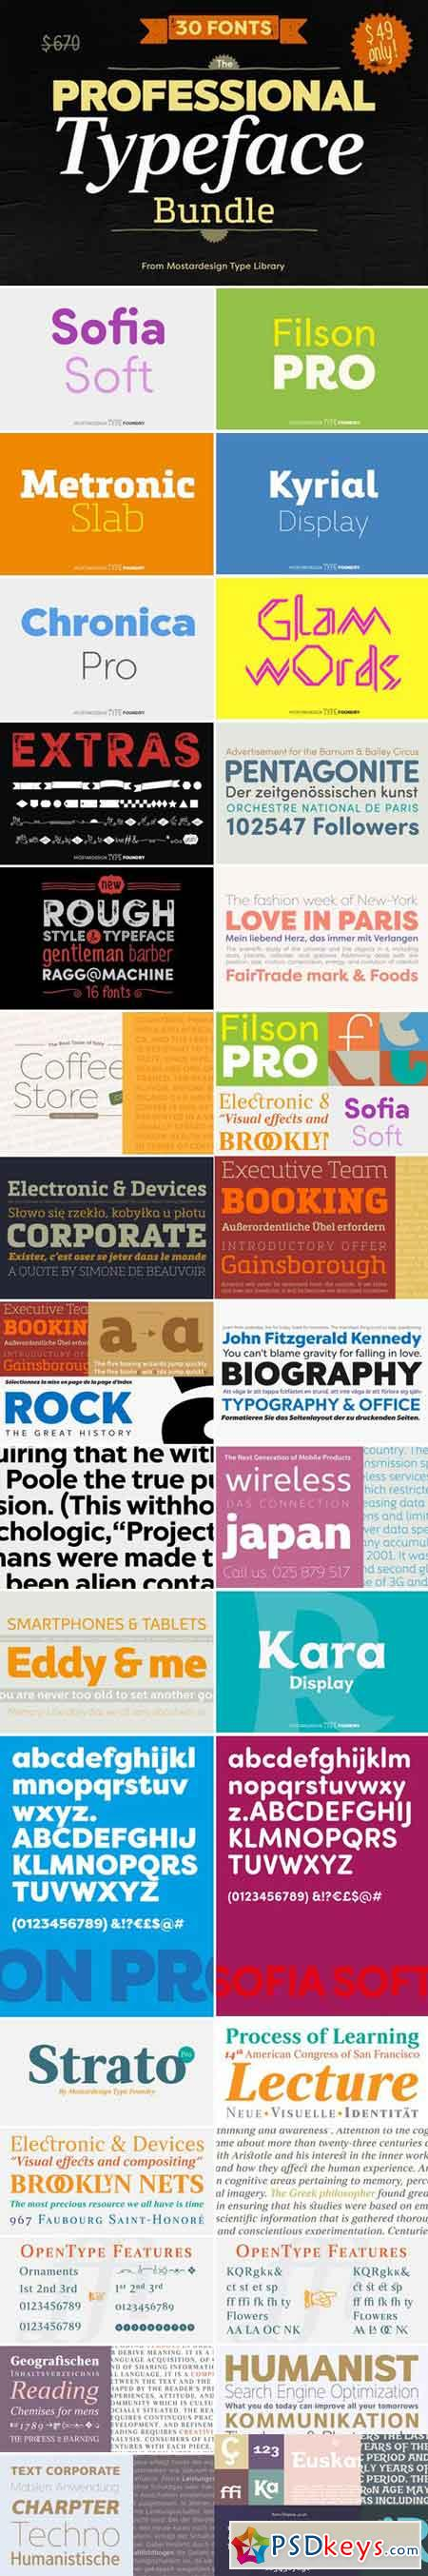 The Professional Bundle 30 fonts 465694